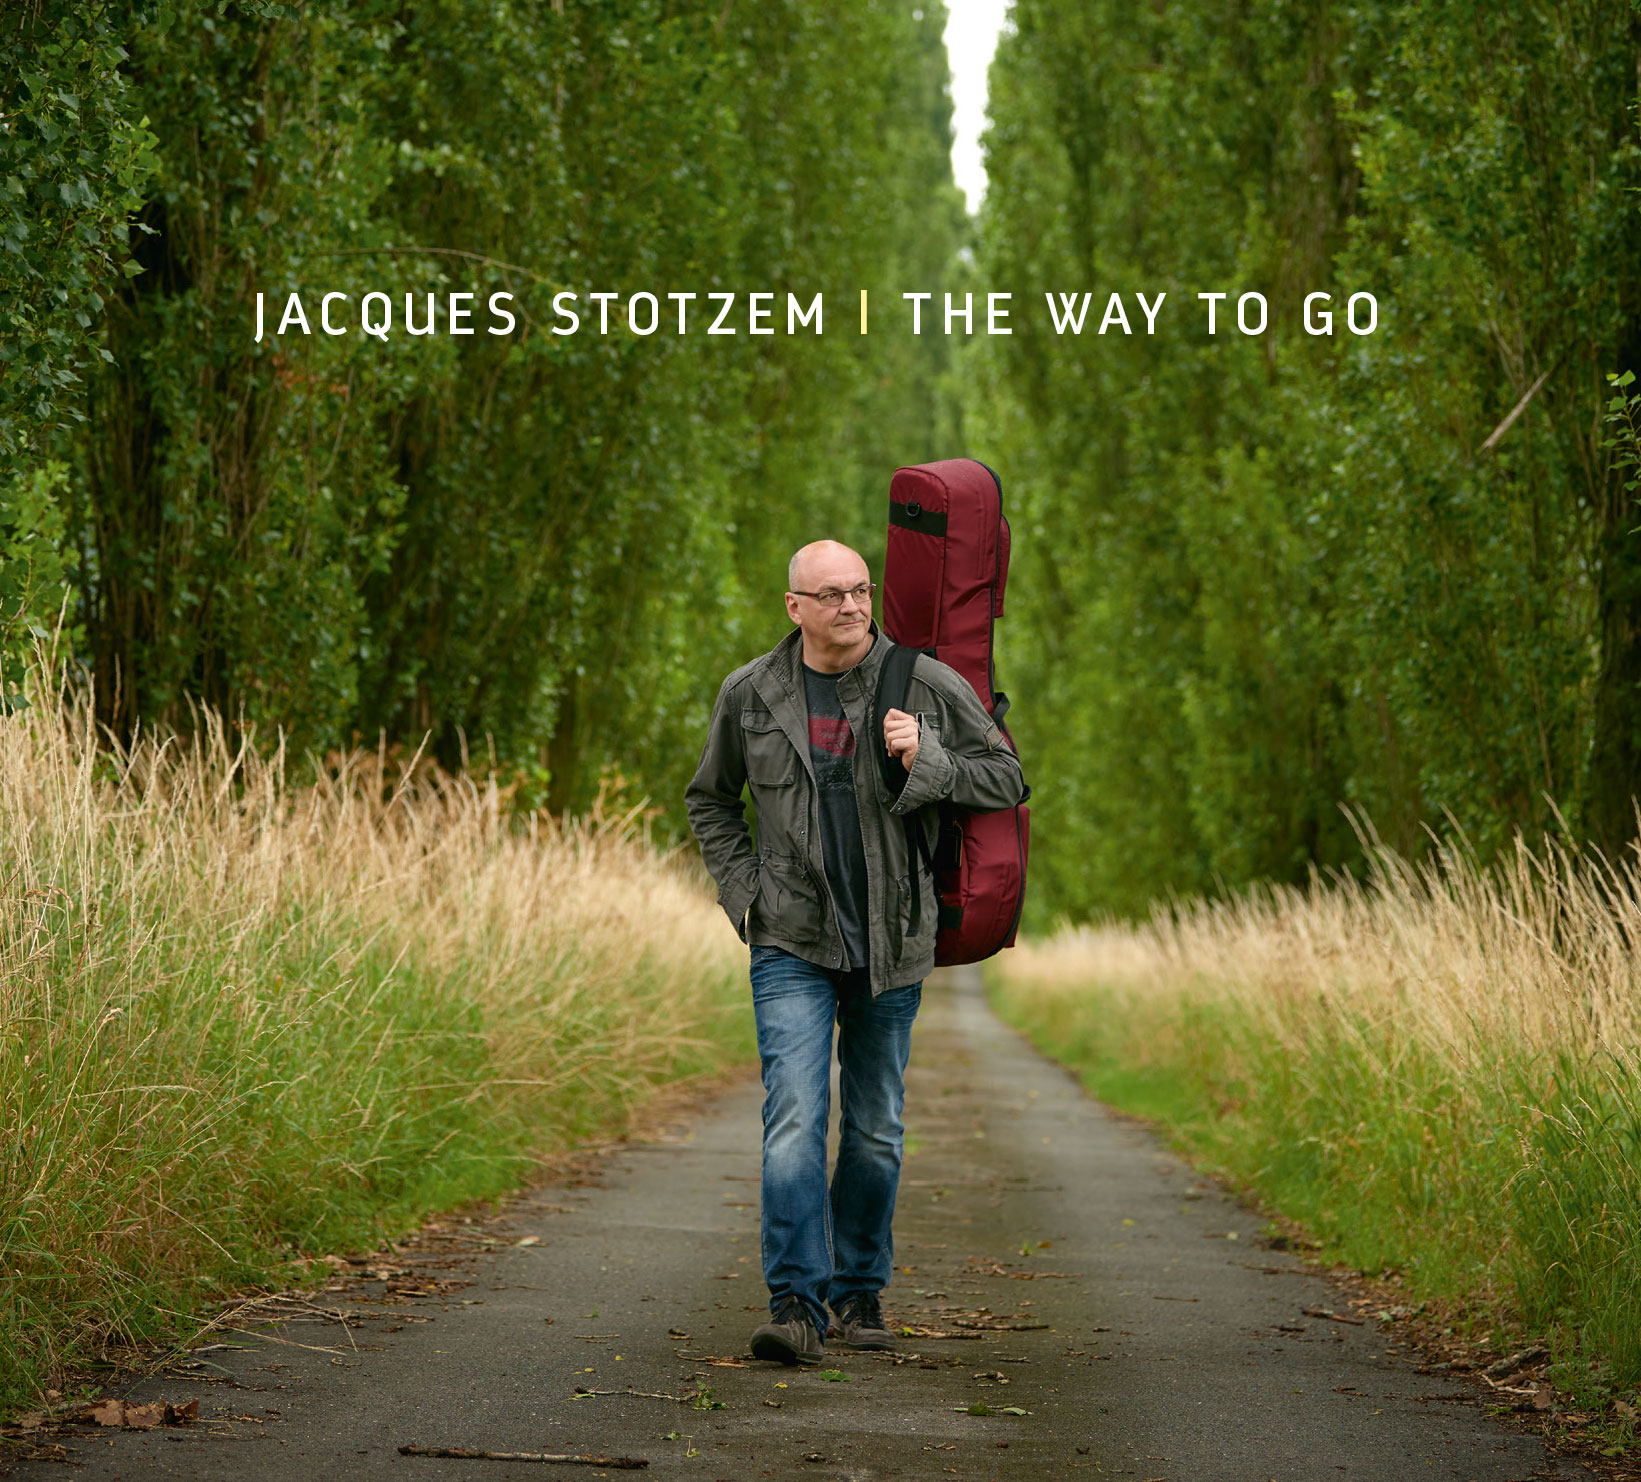 Jacques Stotzem the way to go